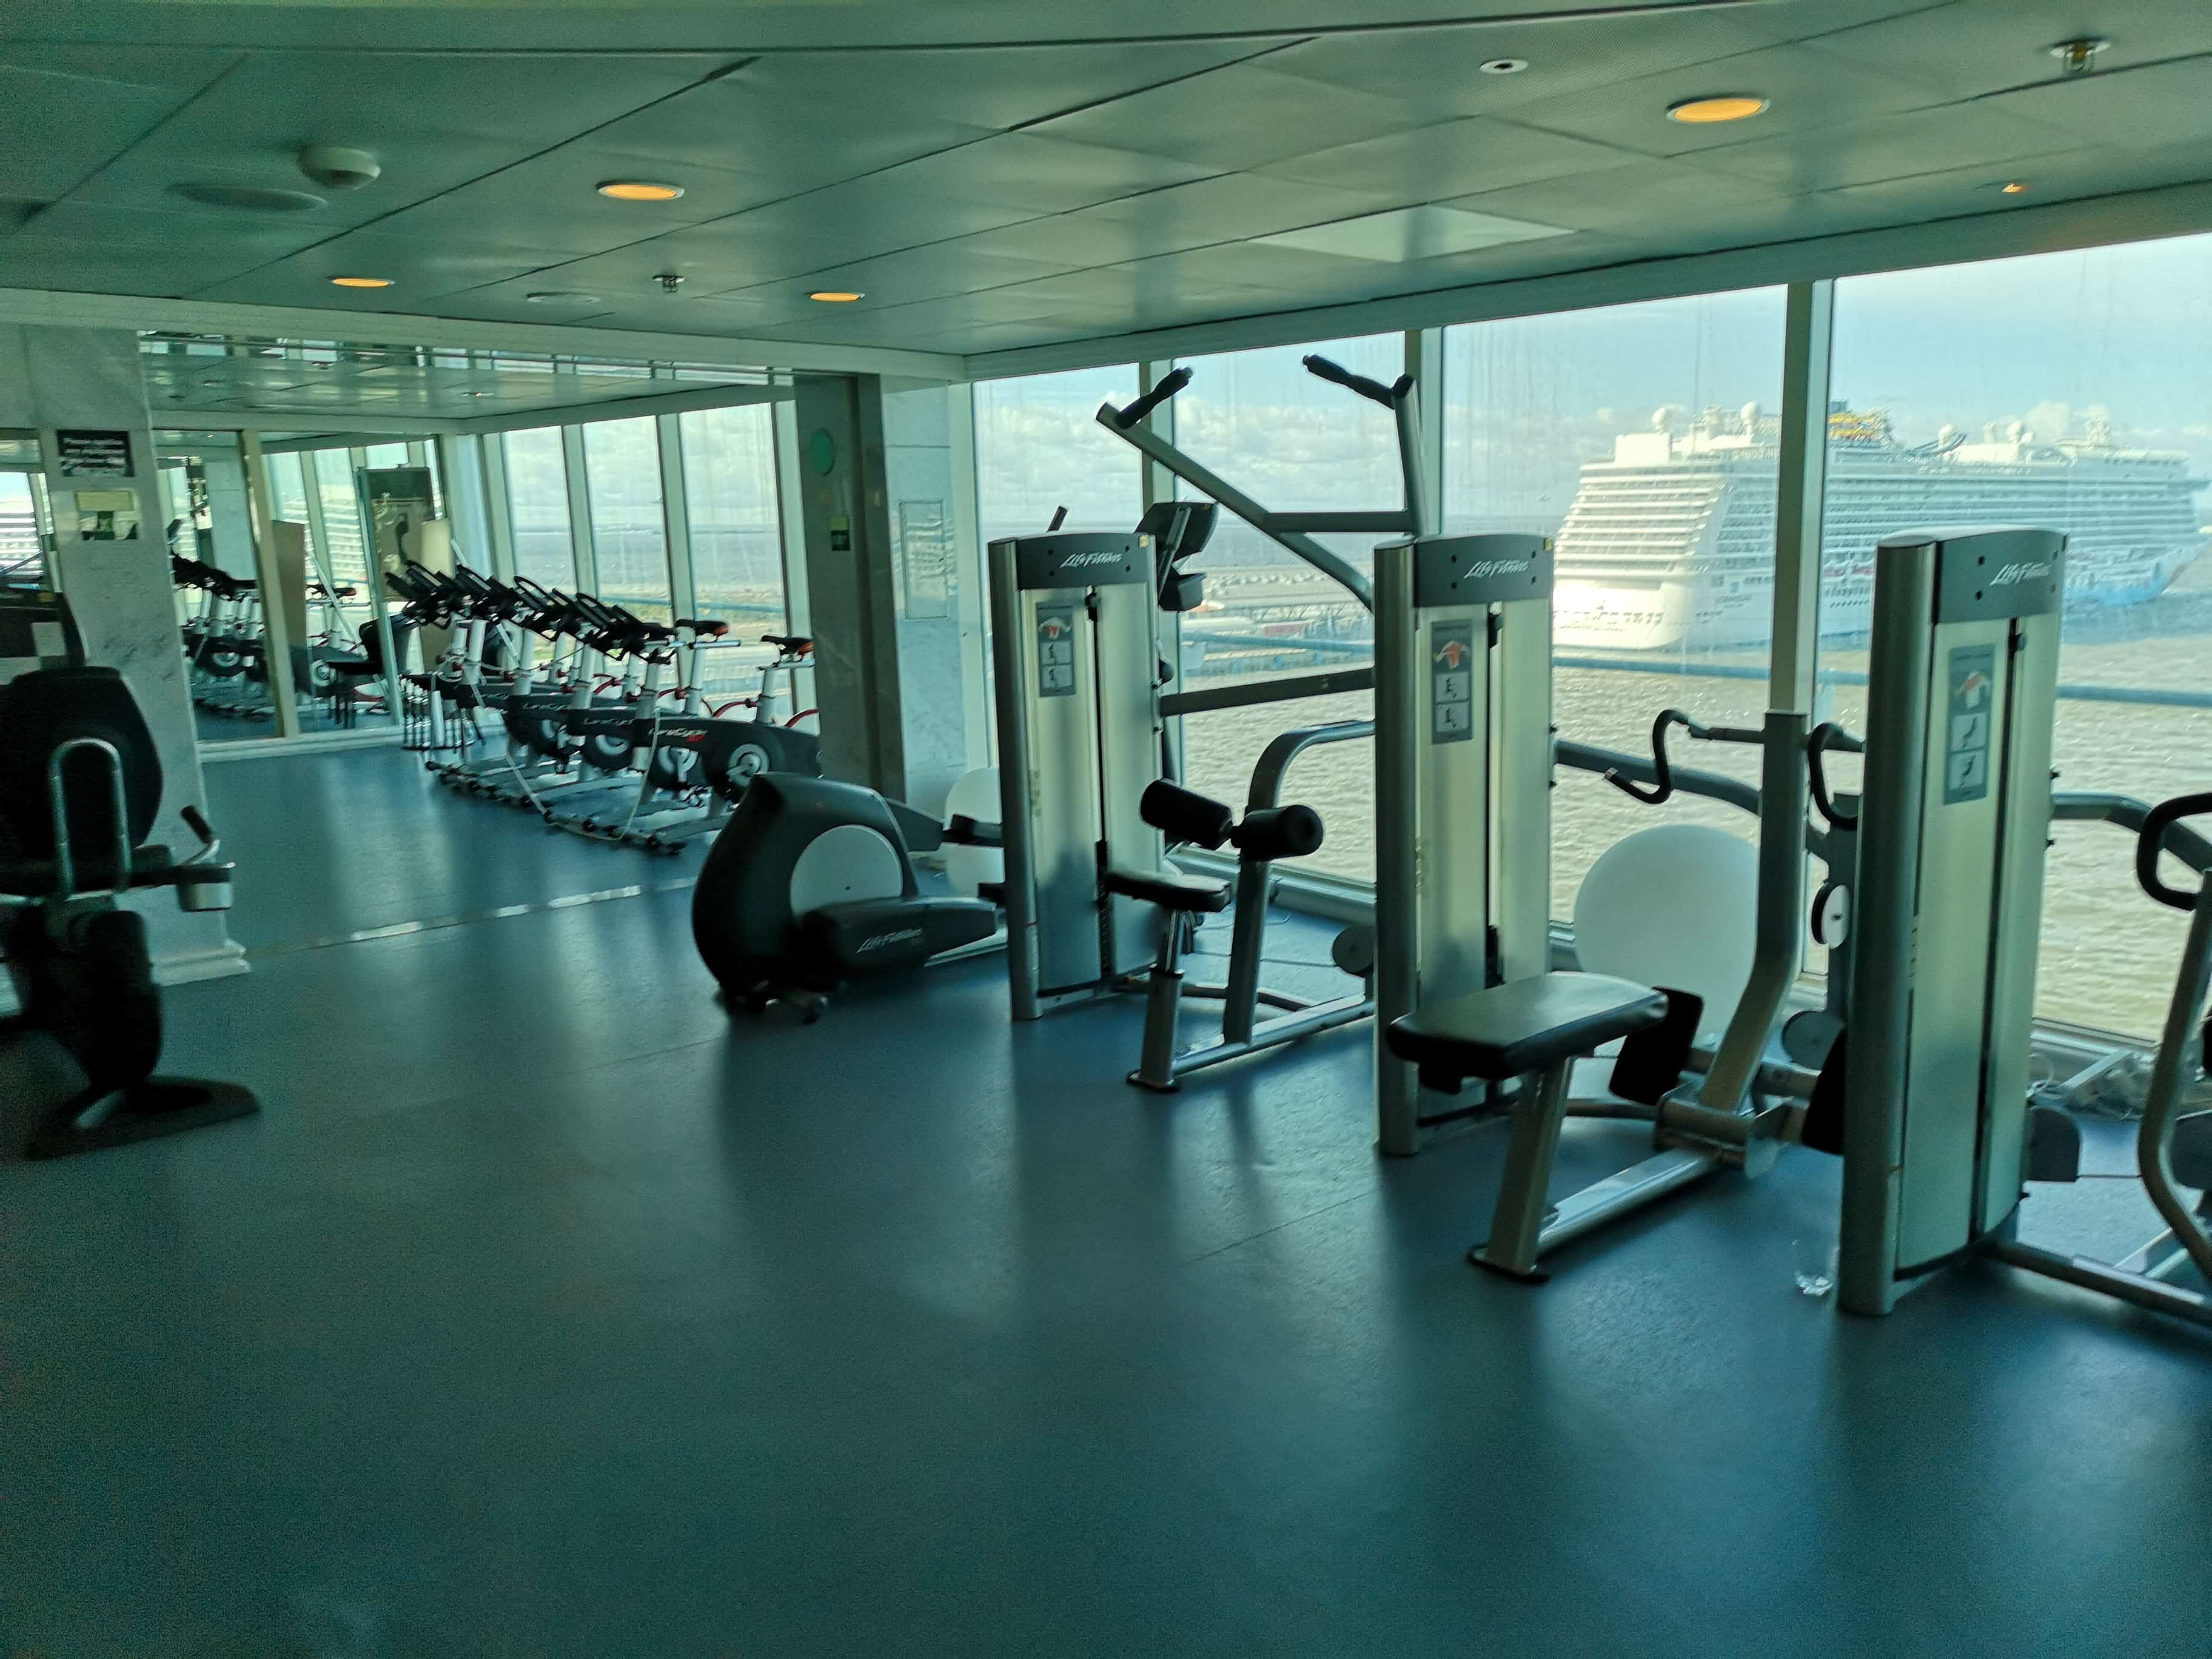 Marella Discovery Gym with Norwegian Breakaway in the background